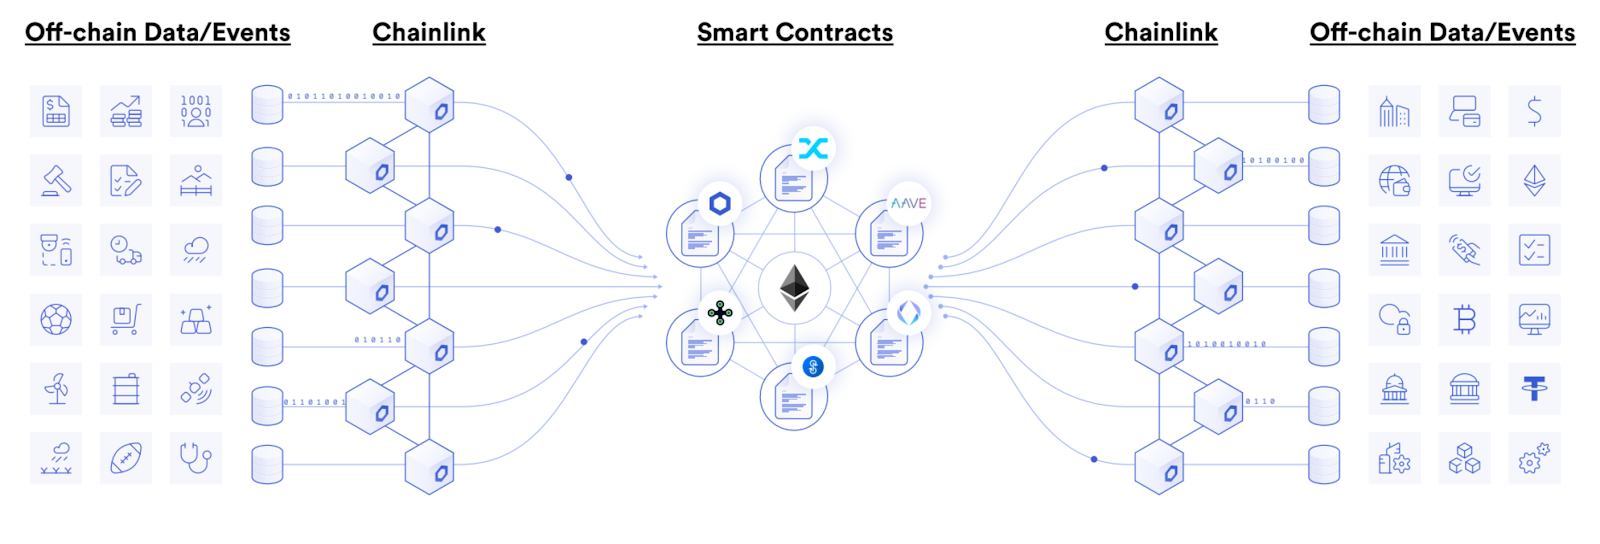 Chainlink Network Diagram